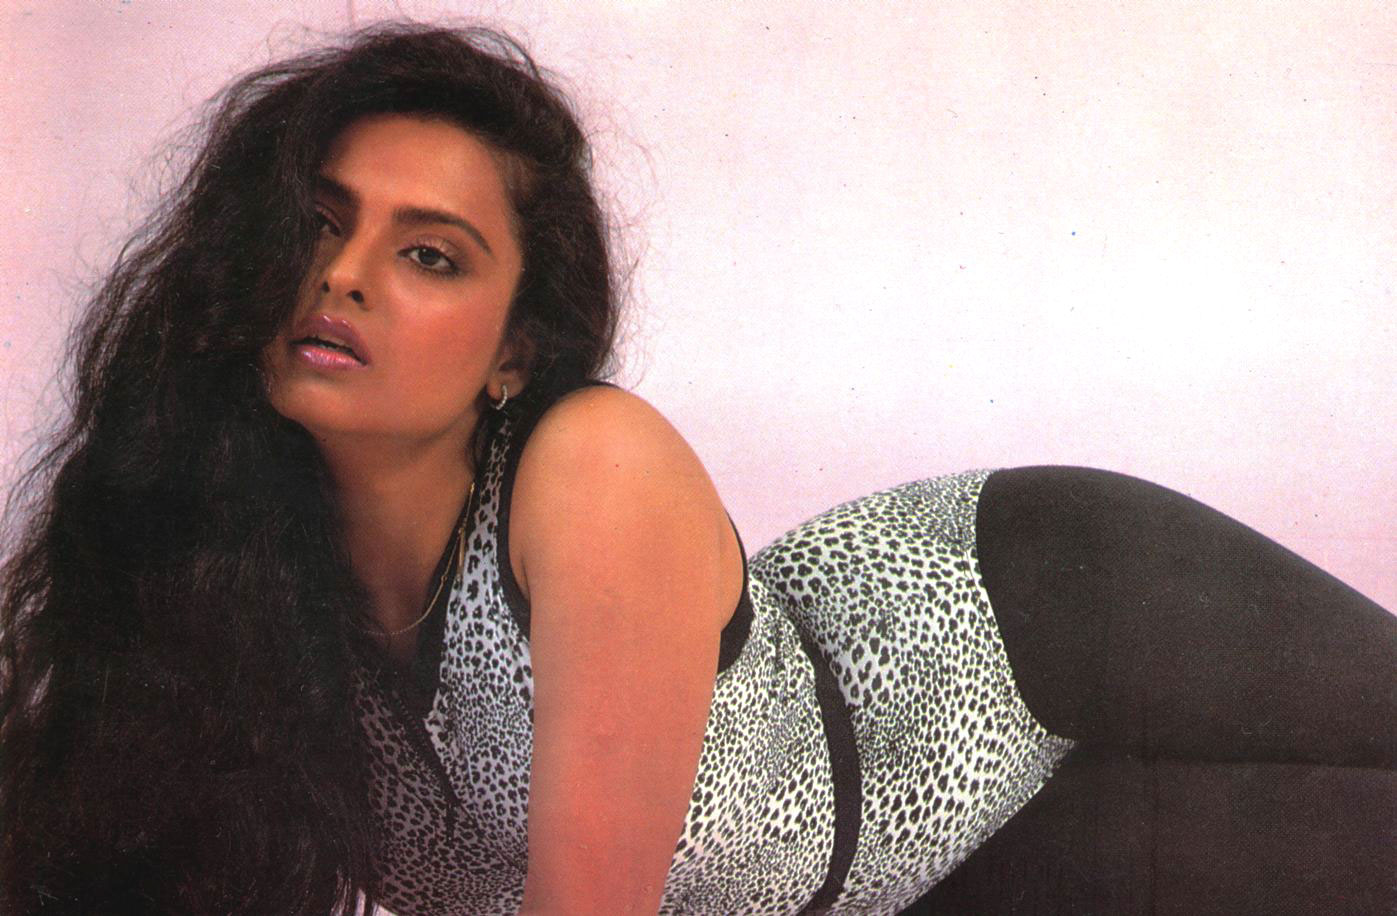 Happens. Actress rekha aastha movie assured, that